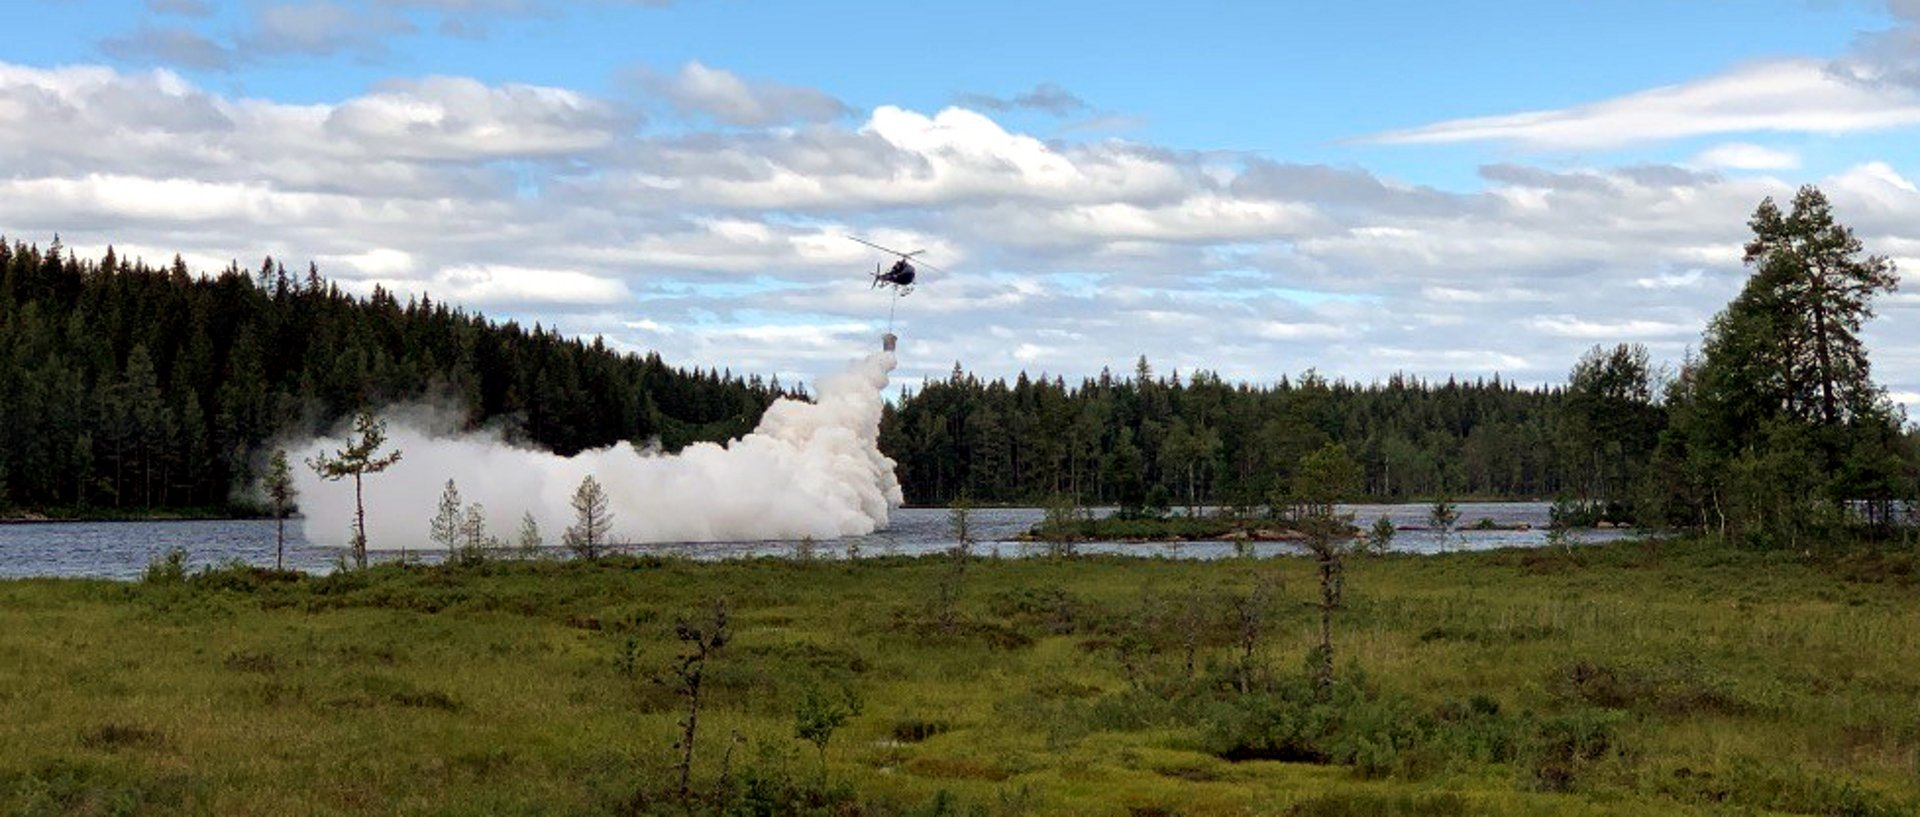 Scandair environmental helicopter activities